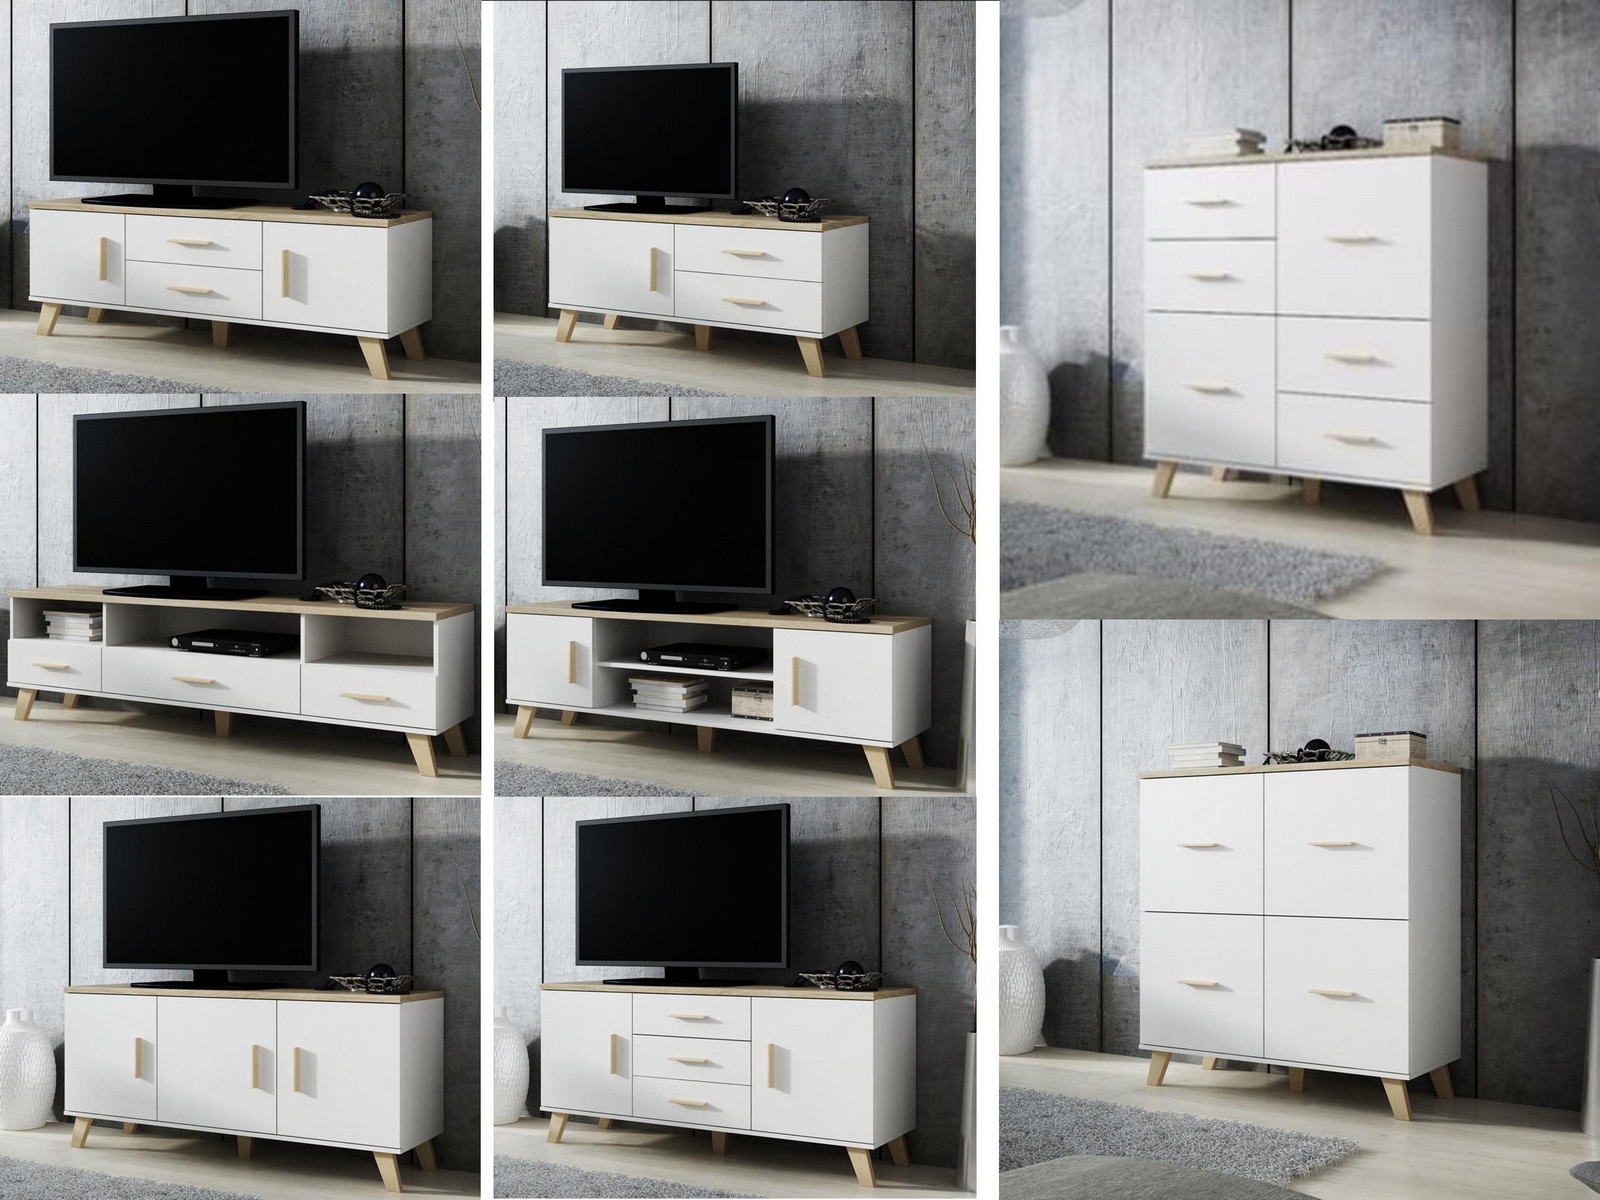 Tv Display Cabinets In Favorite White & Oak Living Room Furniture – Tv Cabinets Sideboards Display (View 9 of 20)